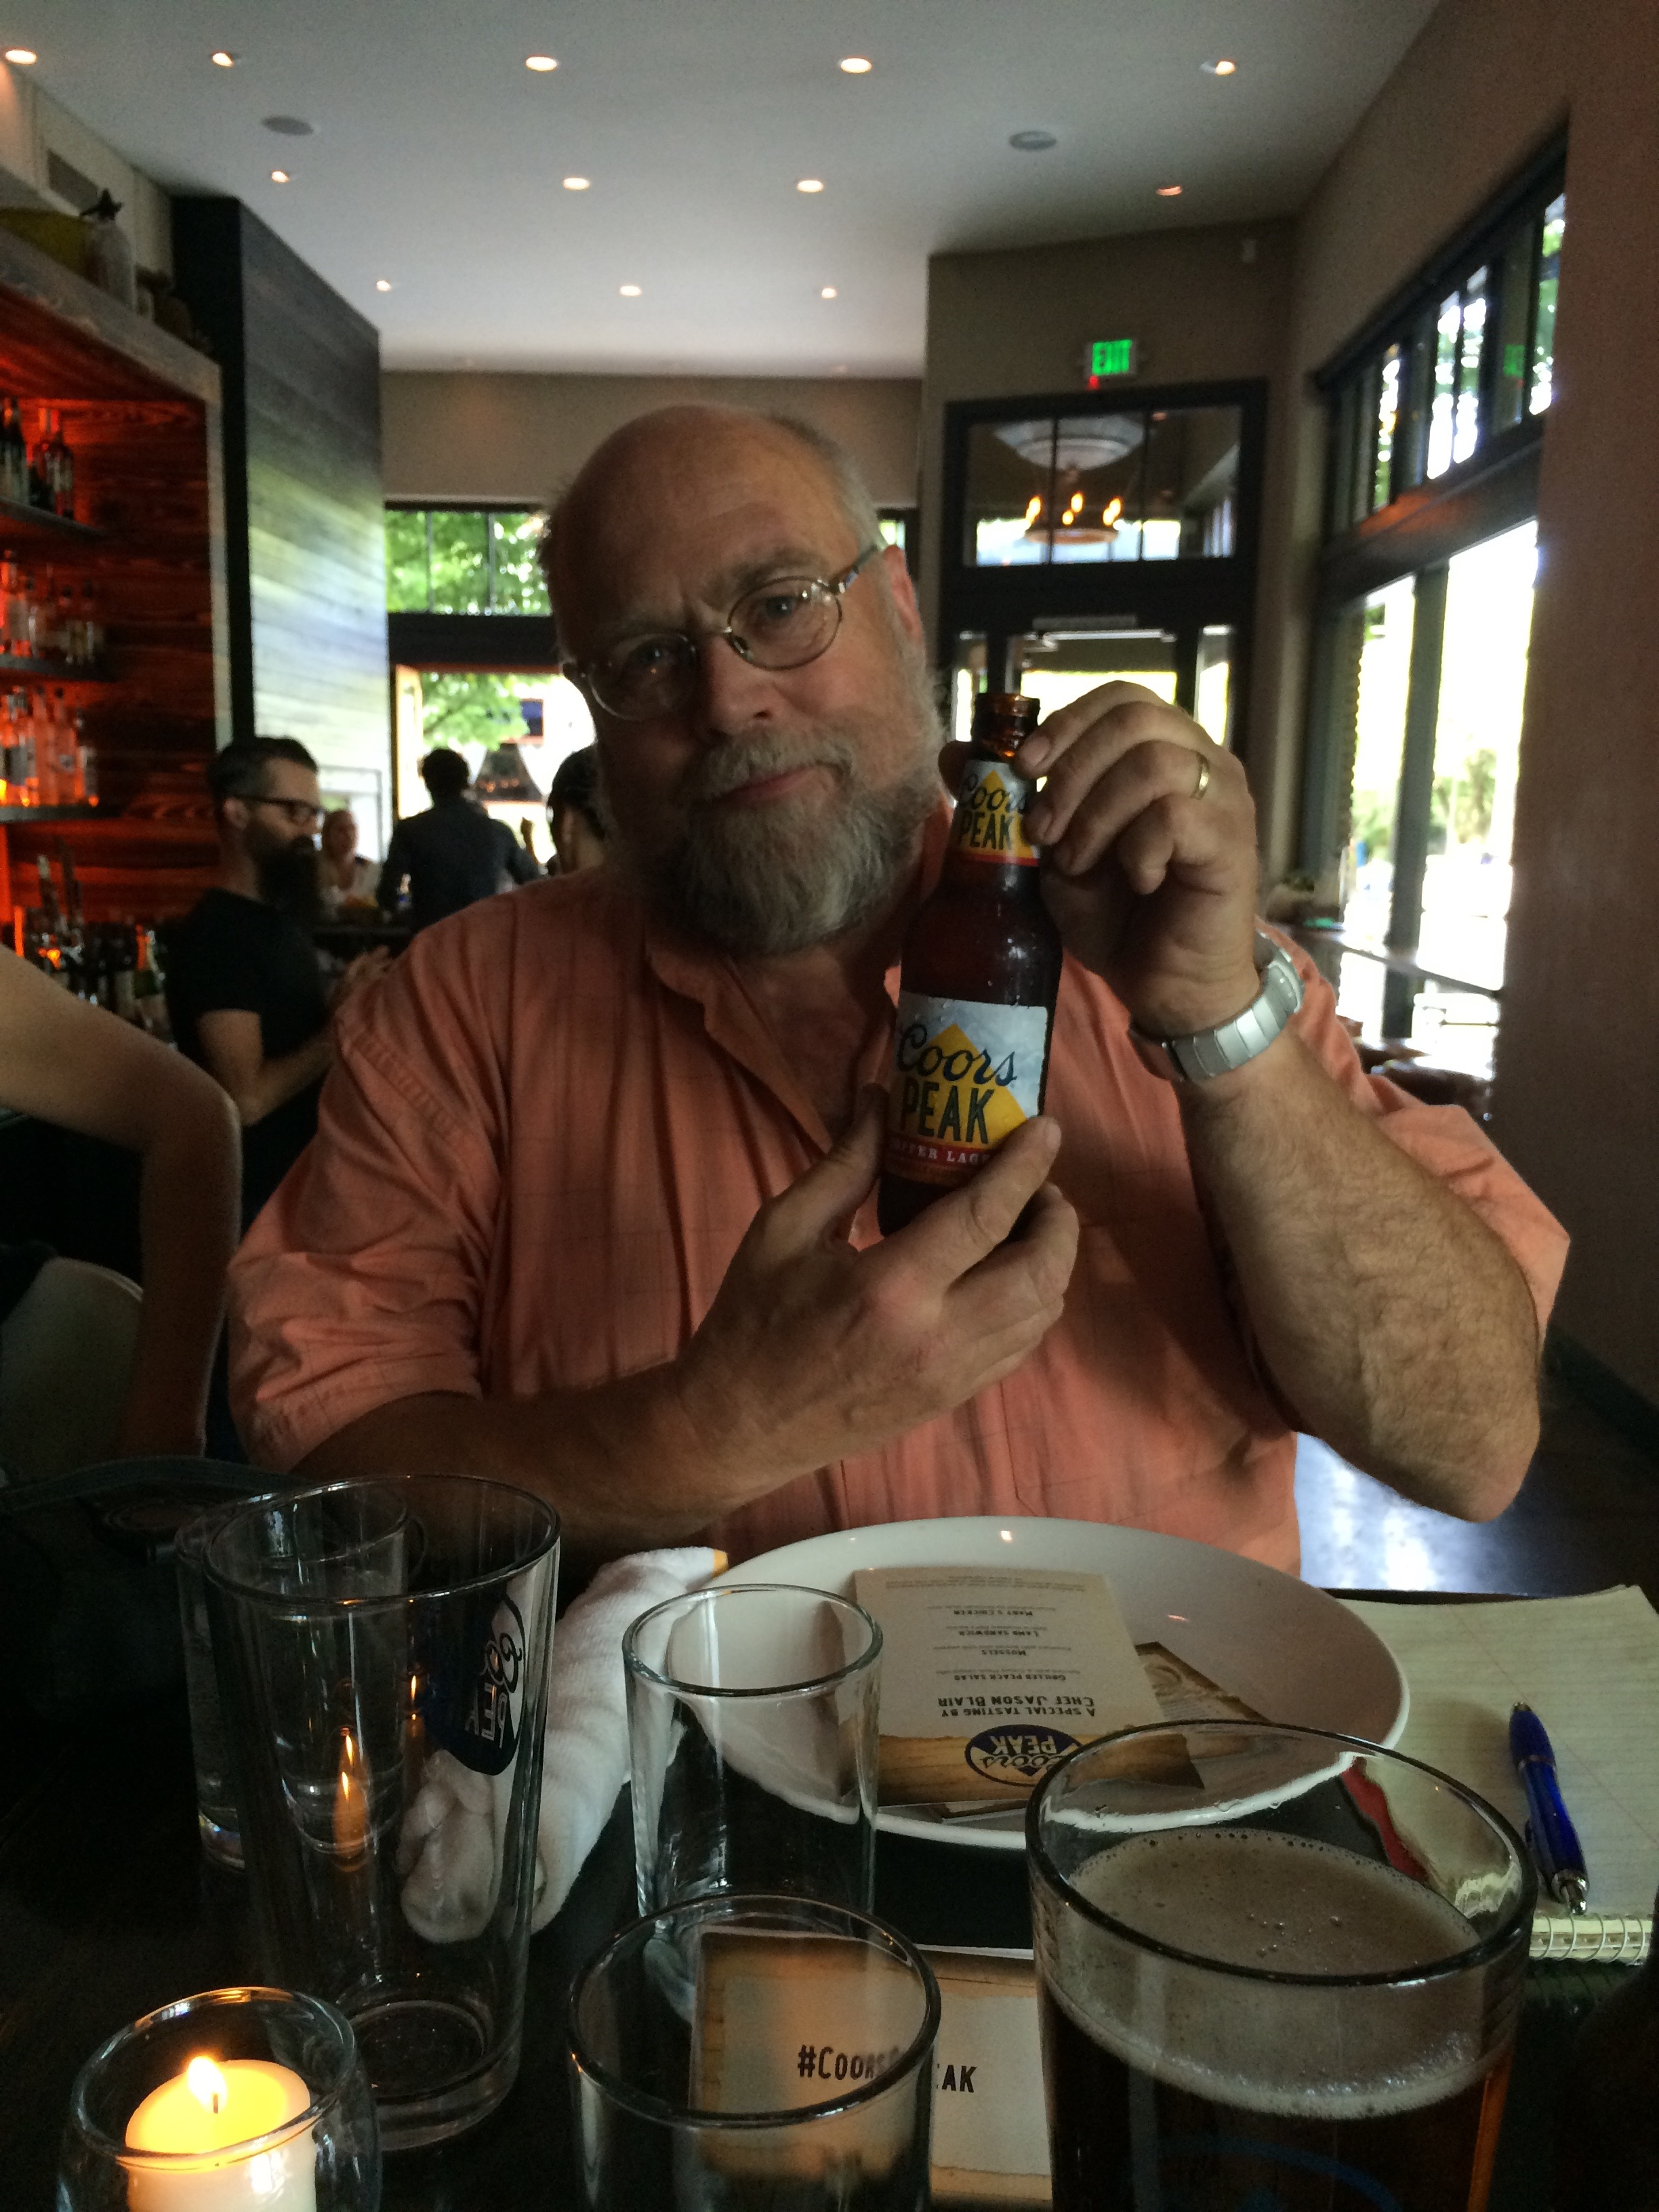 John Foyston models a bottle of Coors Peak